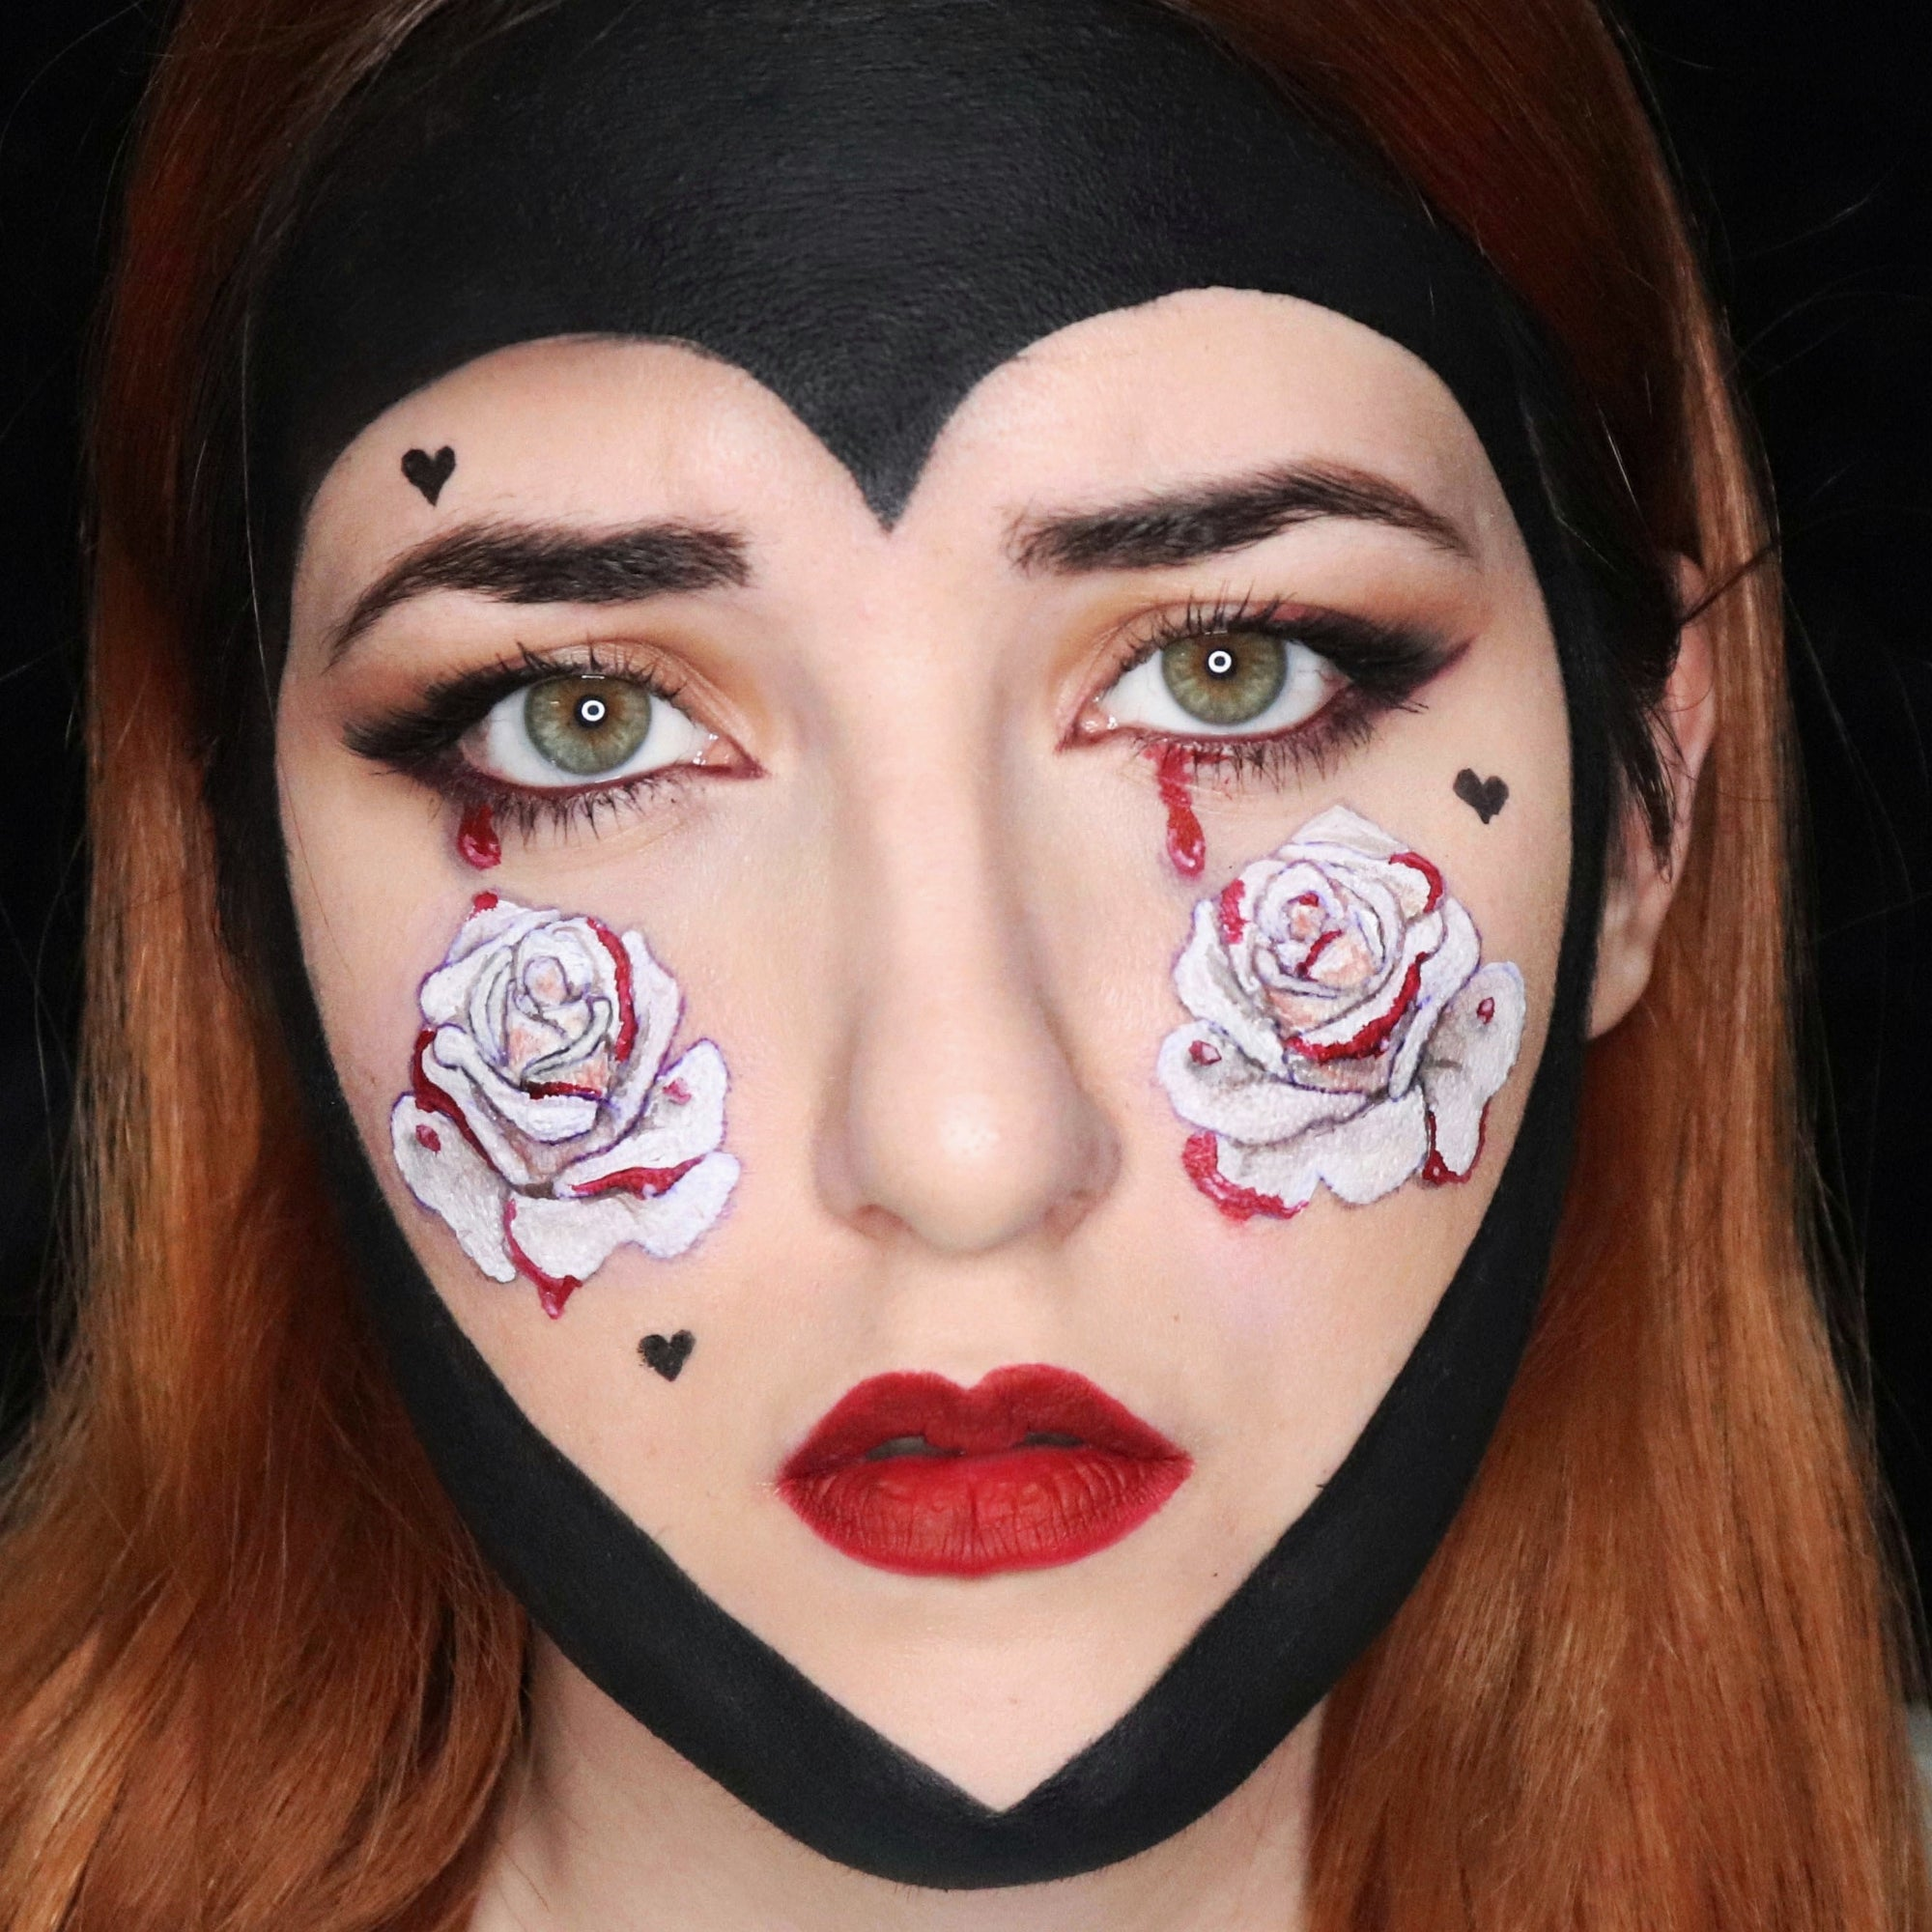 Valentine's Day Face Paint - Queen of Hearts by Ana Cedoviste